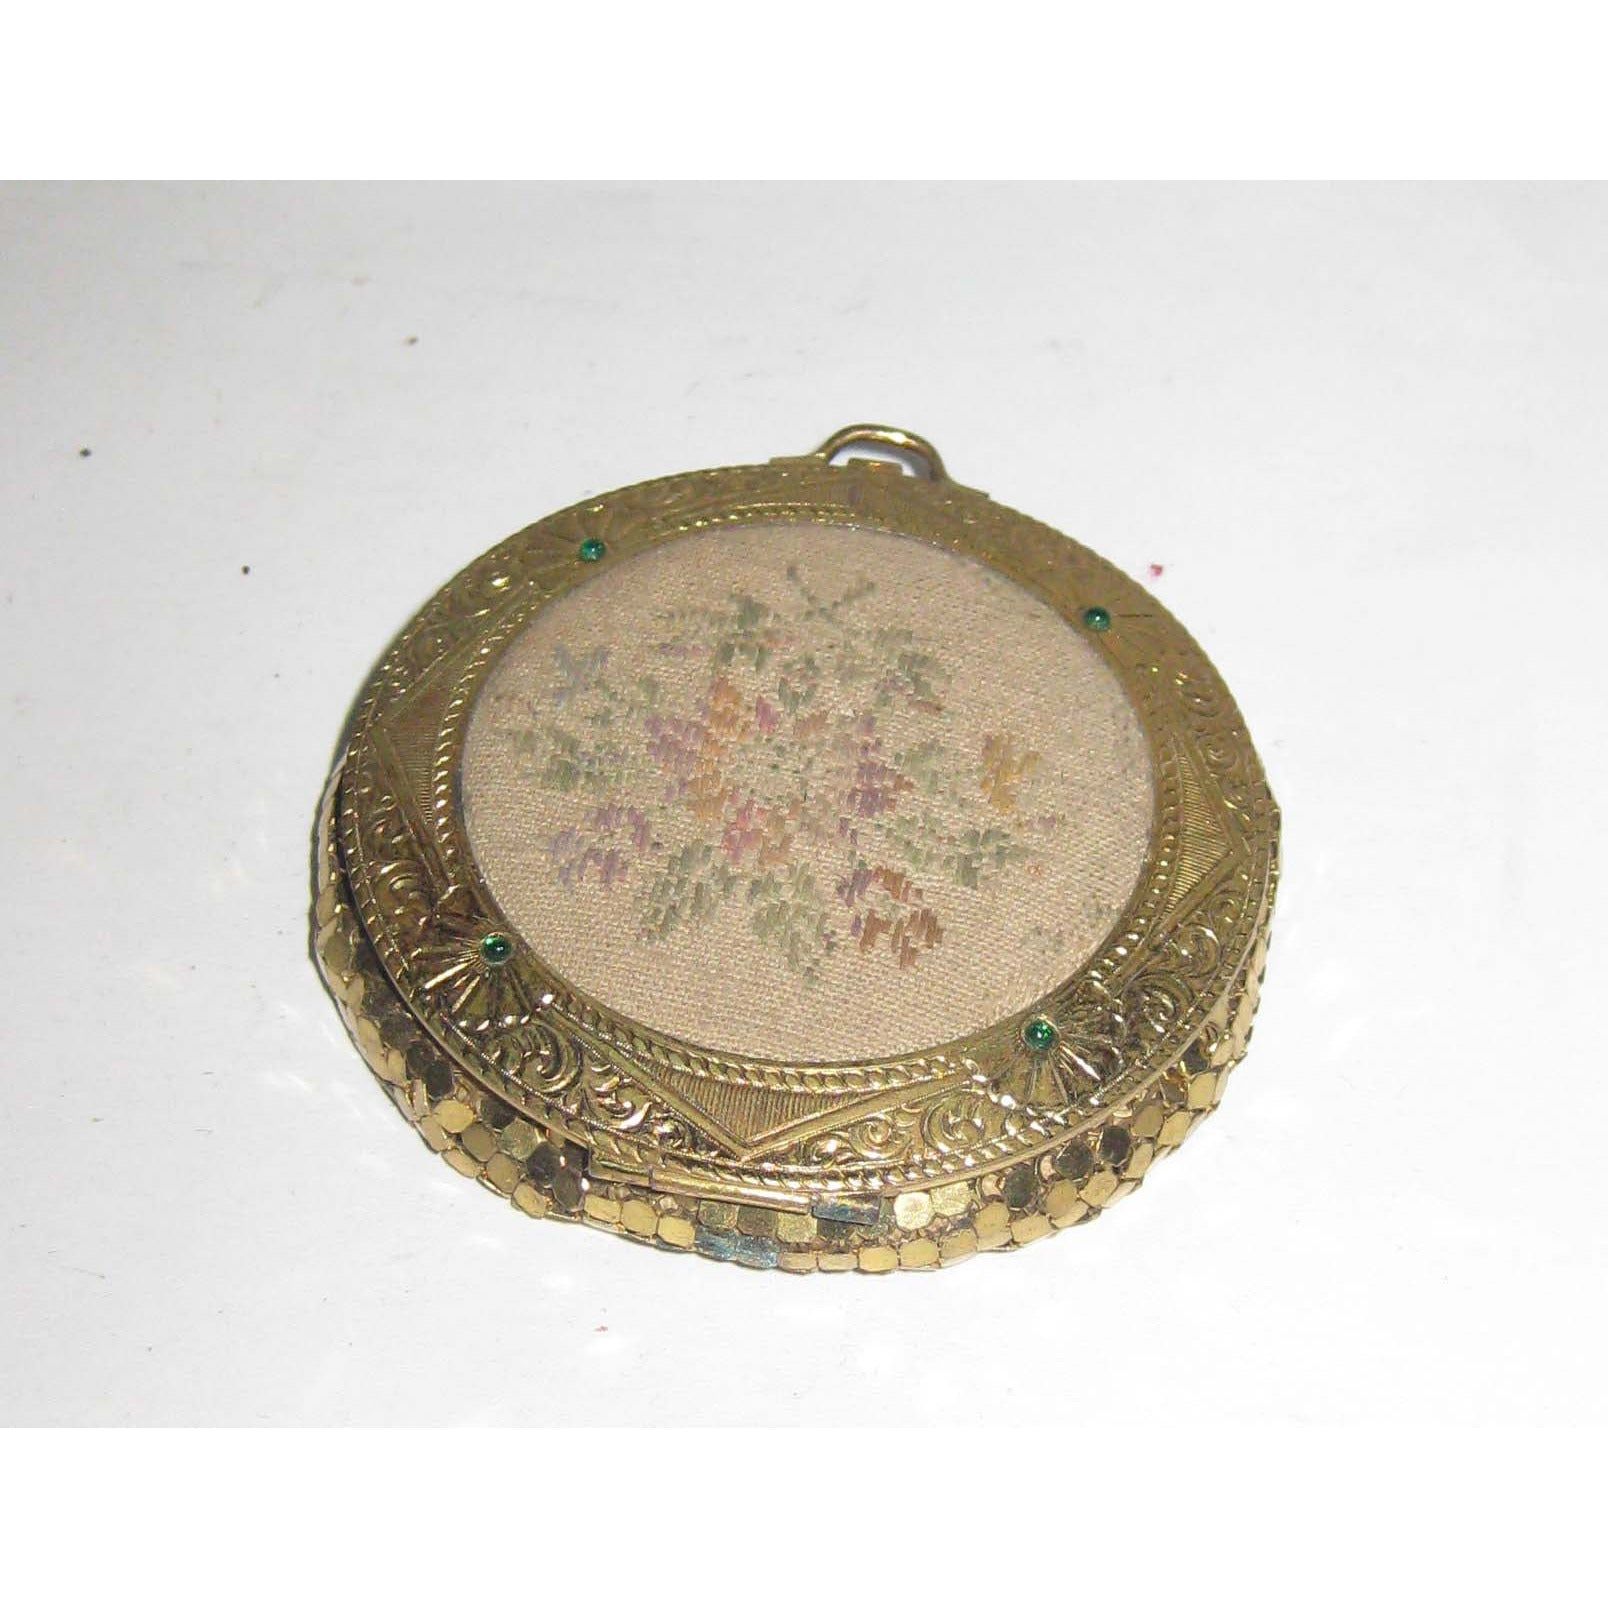 Vintage Ornate Mesh Compact By Evans